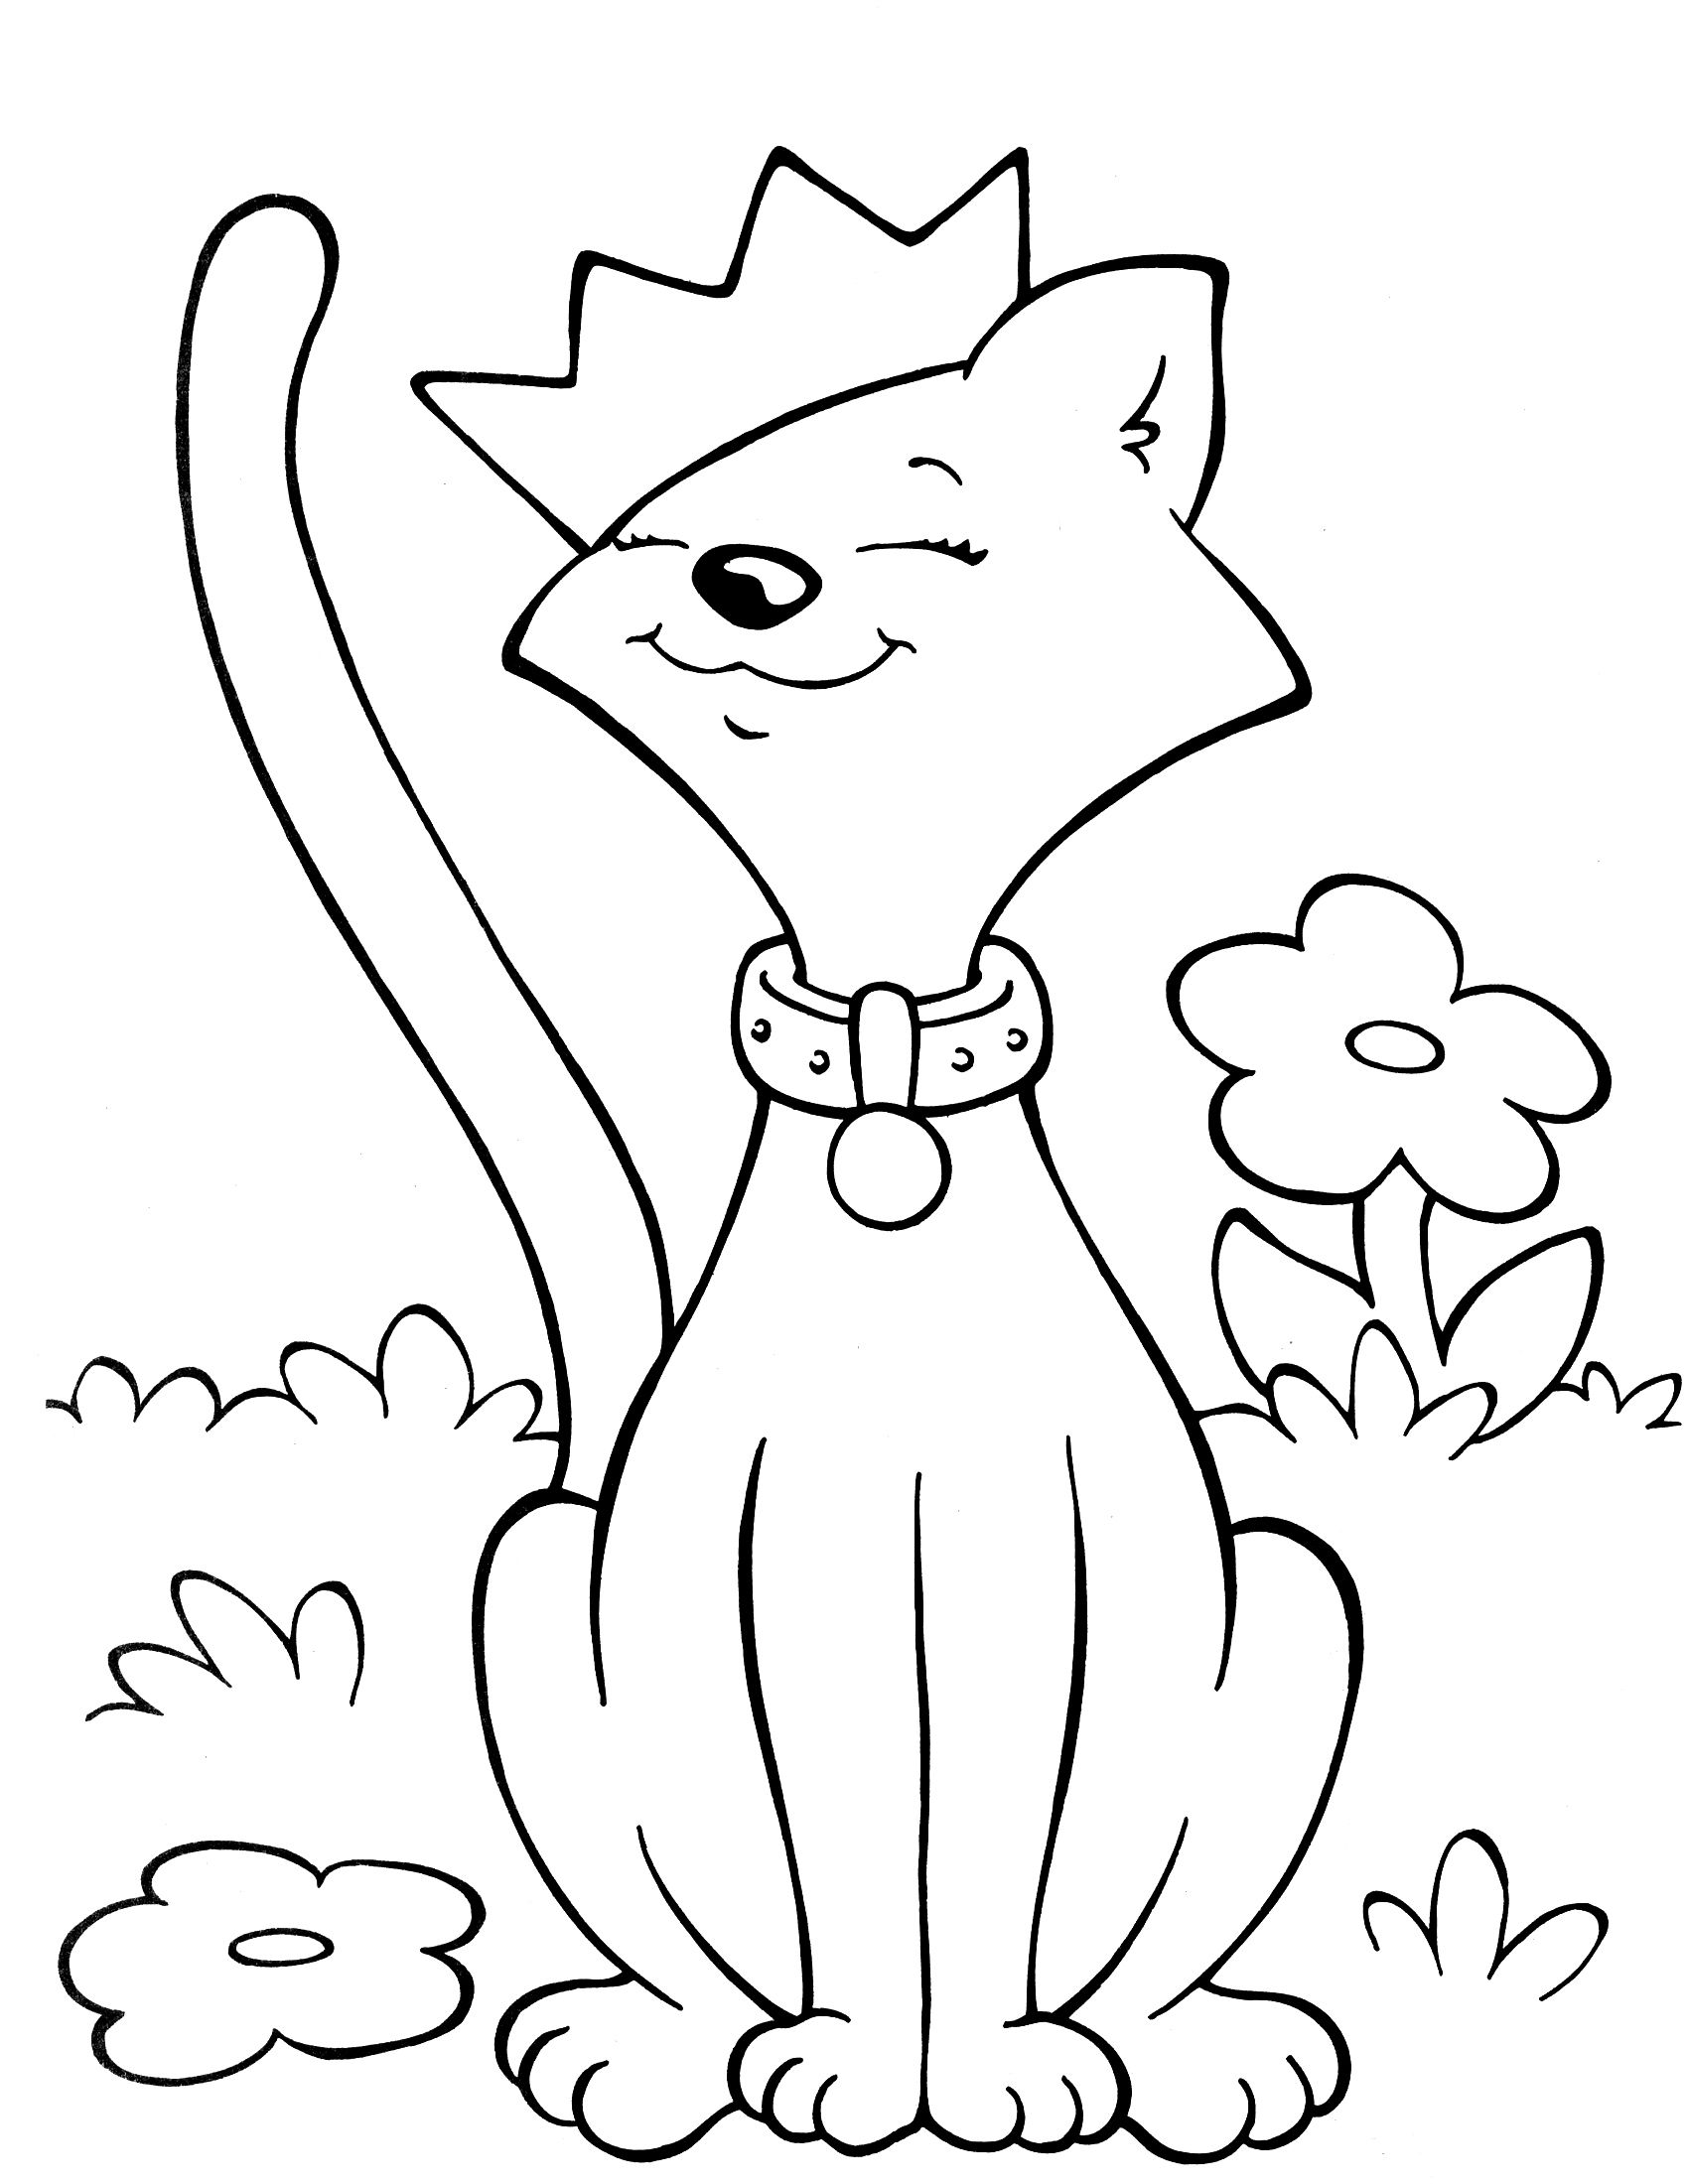 crayola coloring pages # 26